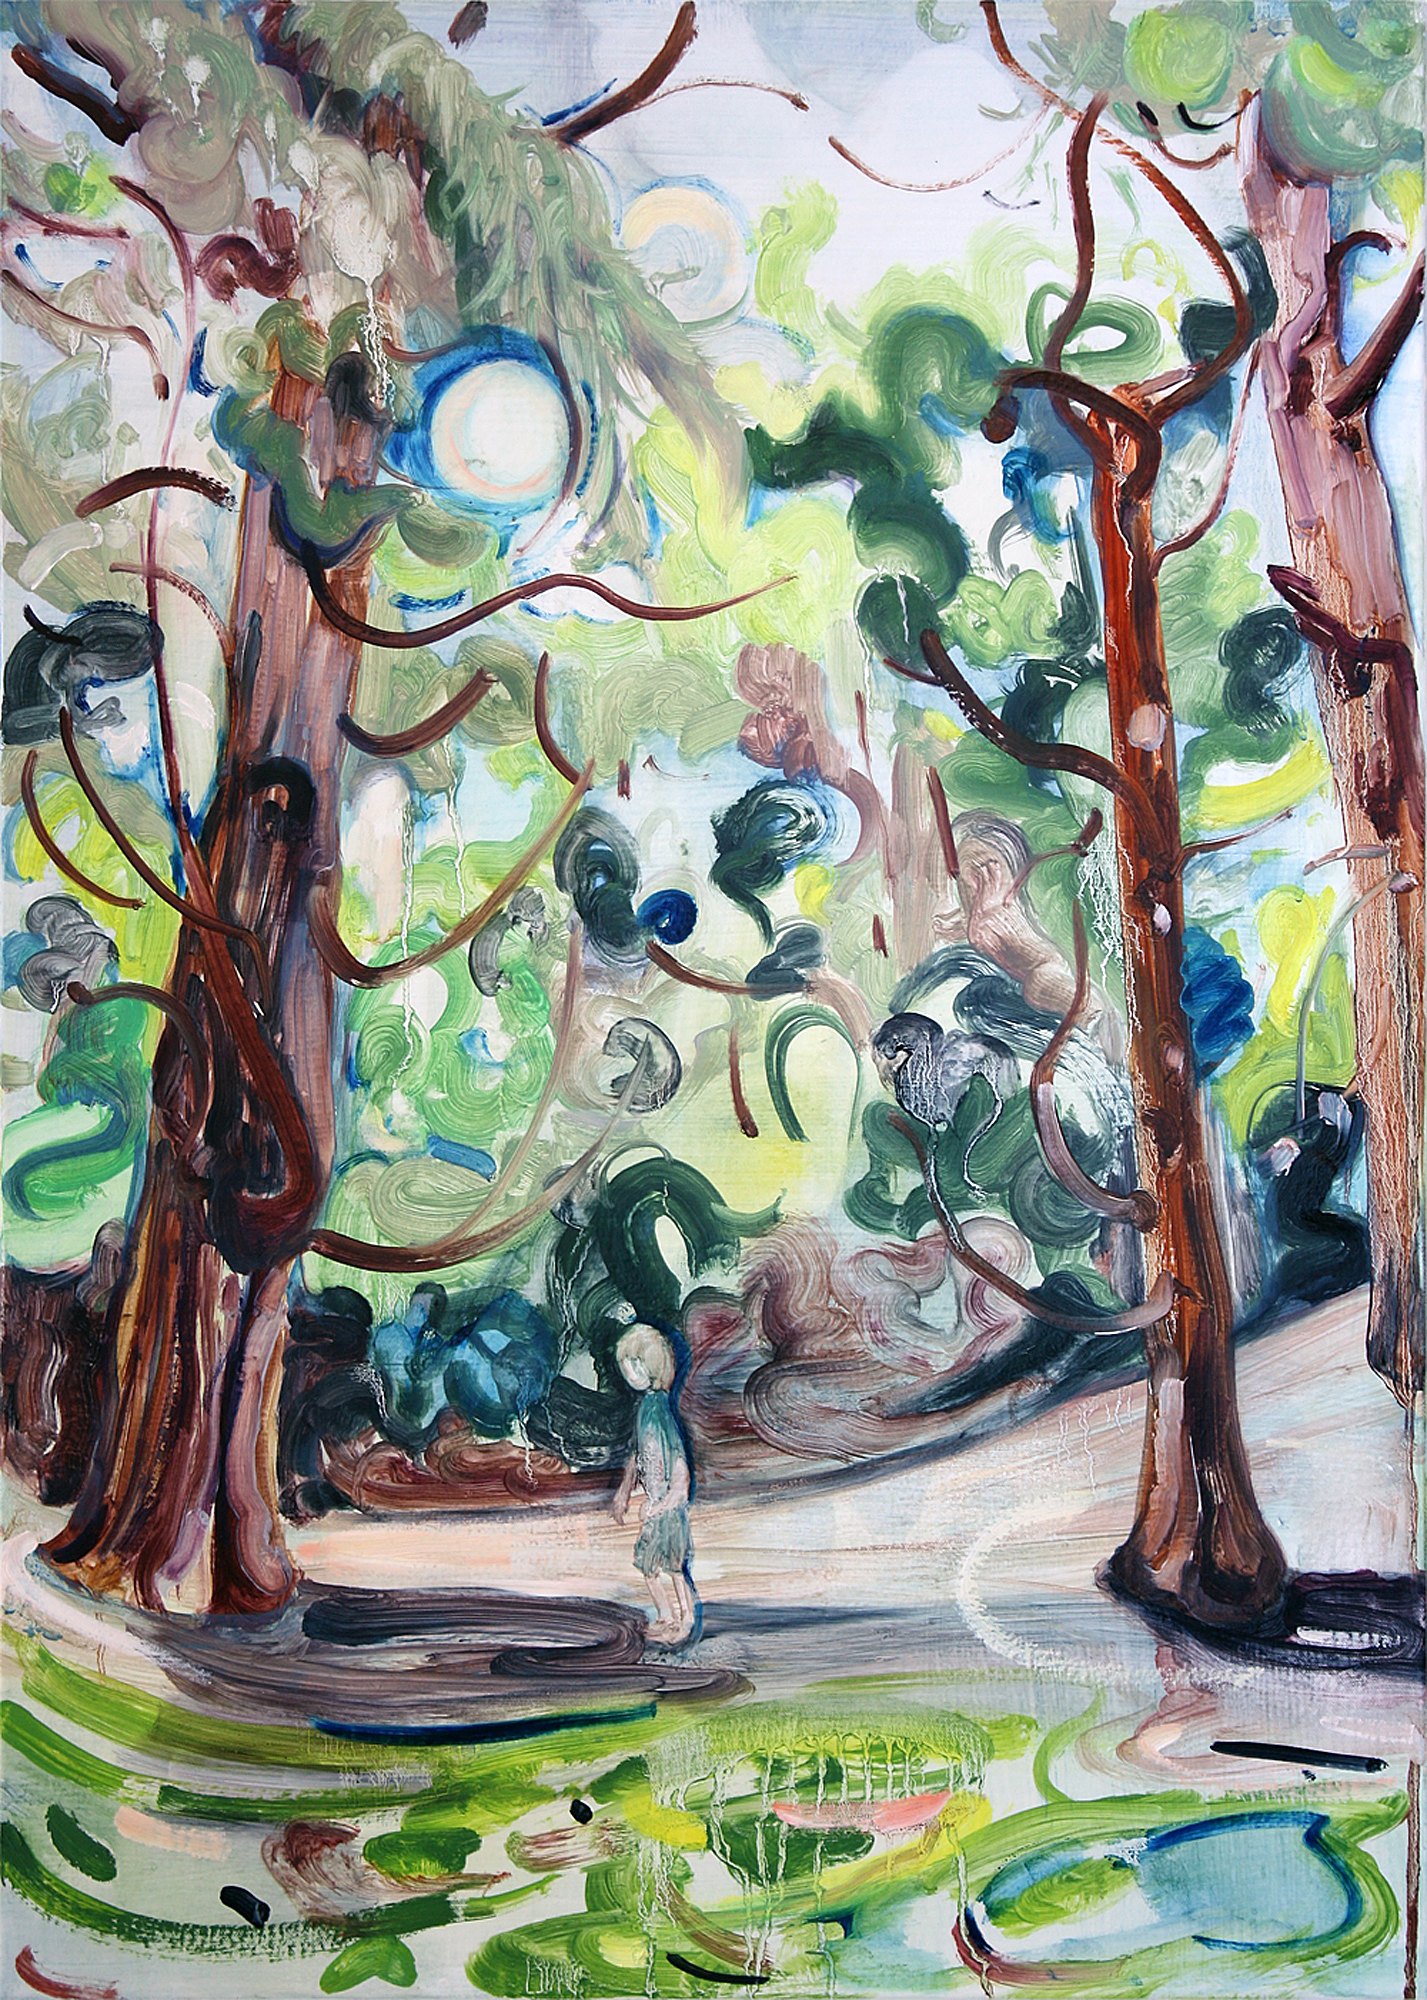 Caroline Thomson, I'll Drive a Tank Through Your Heart II, Oil on Canvas, 71 x 51 X 4 cm,  http://www.carolinethomson.com